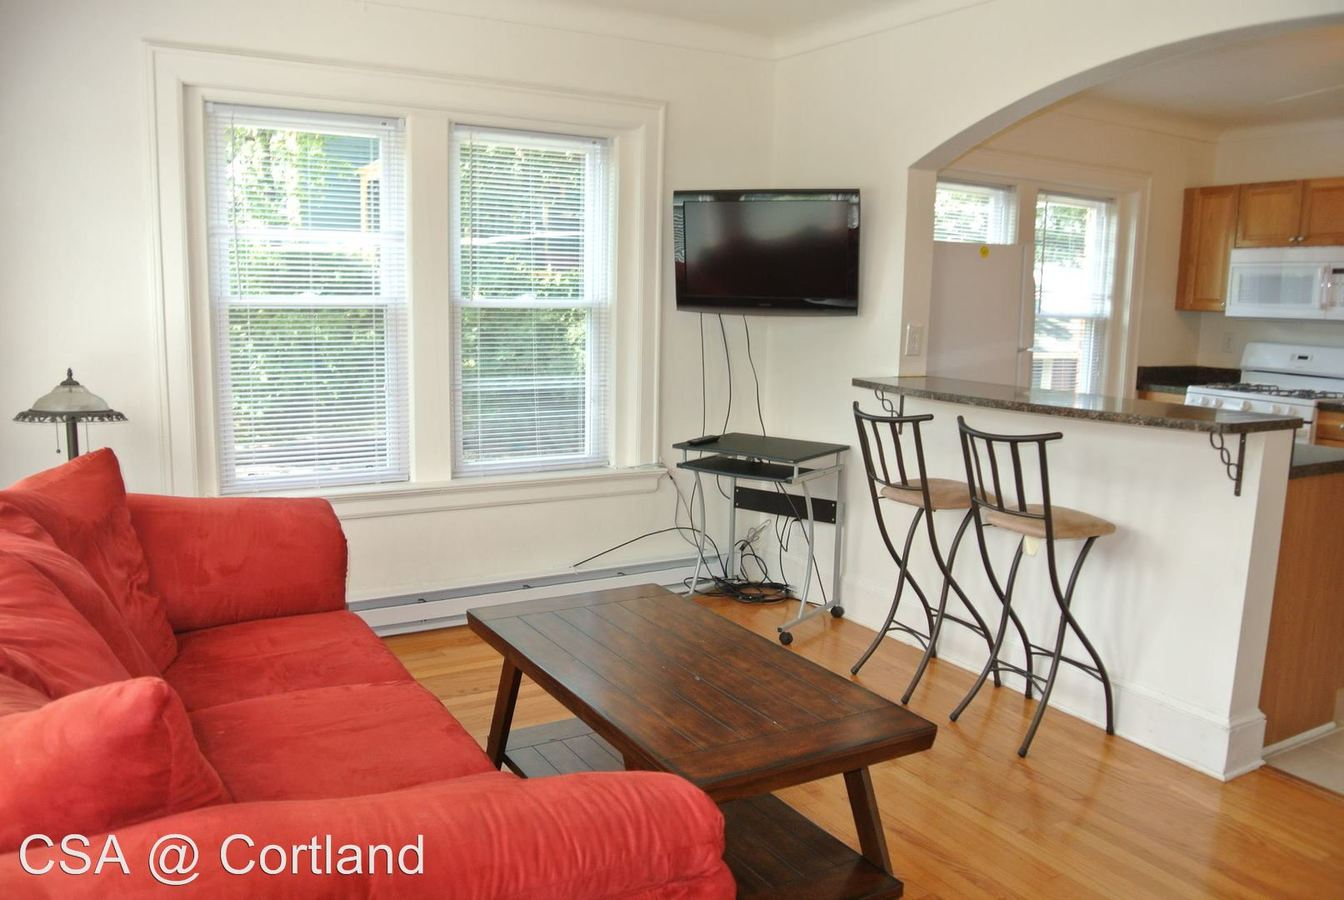 2 Bedrooms 1 Bathroom Apartment for rent at 41 Prospect Terrace/ 27 Stevenson in Cortland, NY